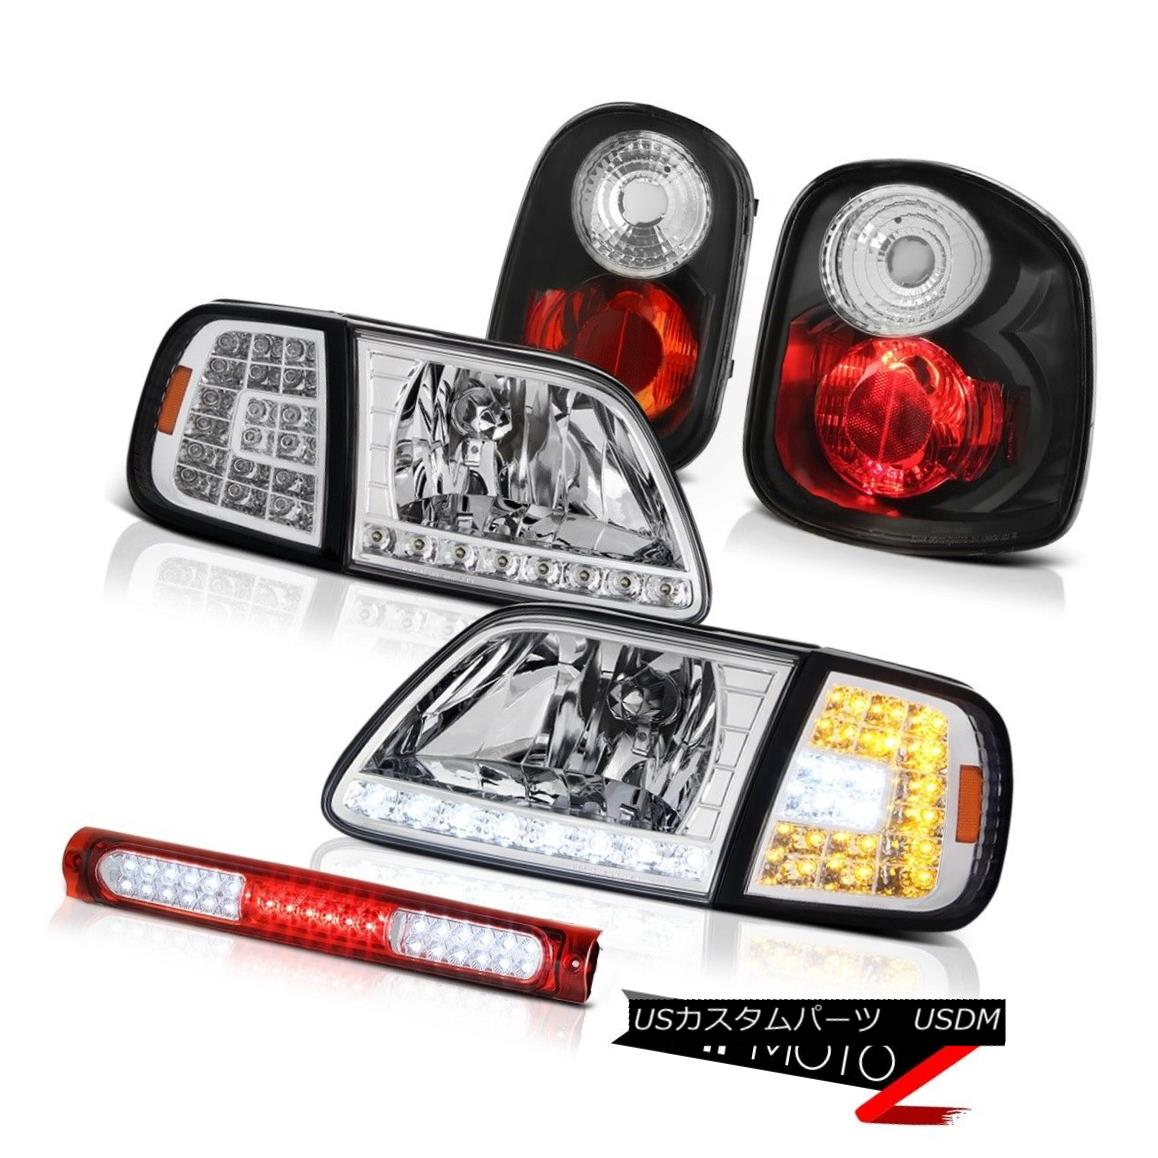 ヘッドライト Headlights DRL Bumper Tail Lamps Brake Cargo LED 01-03 F150 Flareside King Ranch ヘッドライトDRLバンパーテールランプブレーキカーゴLED 01-03 F150 Flareside King Ranch